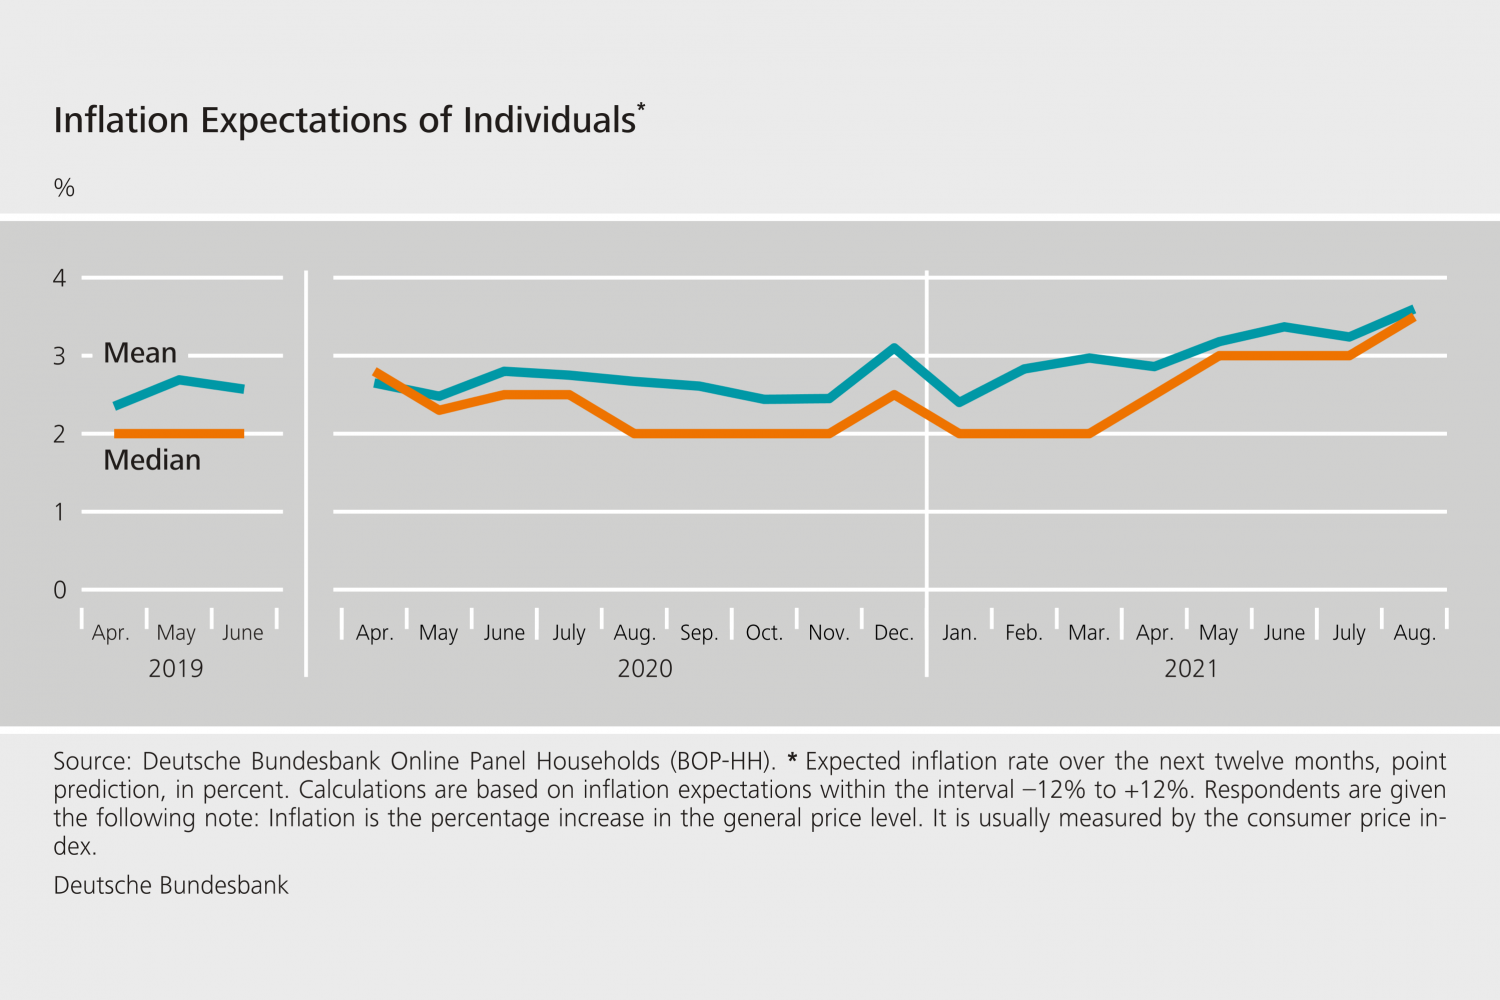 Inflation Expectations of Individuals